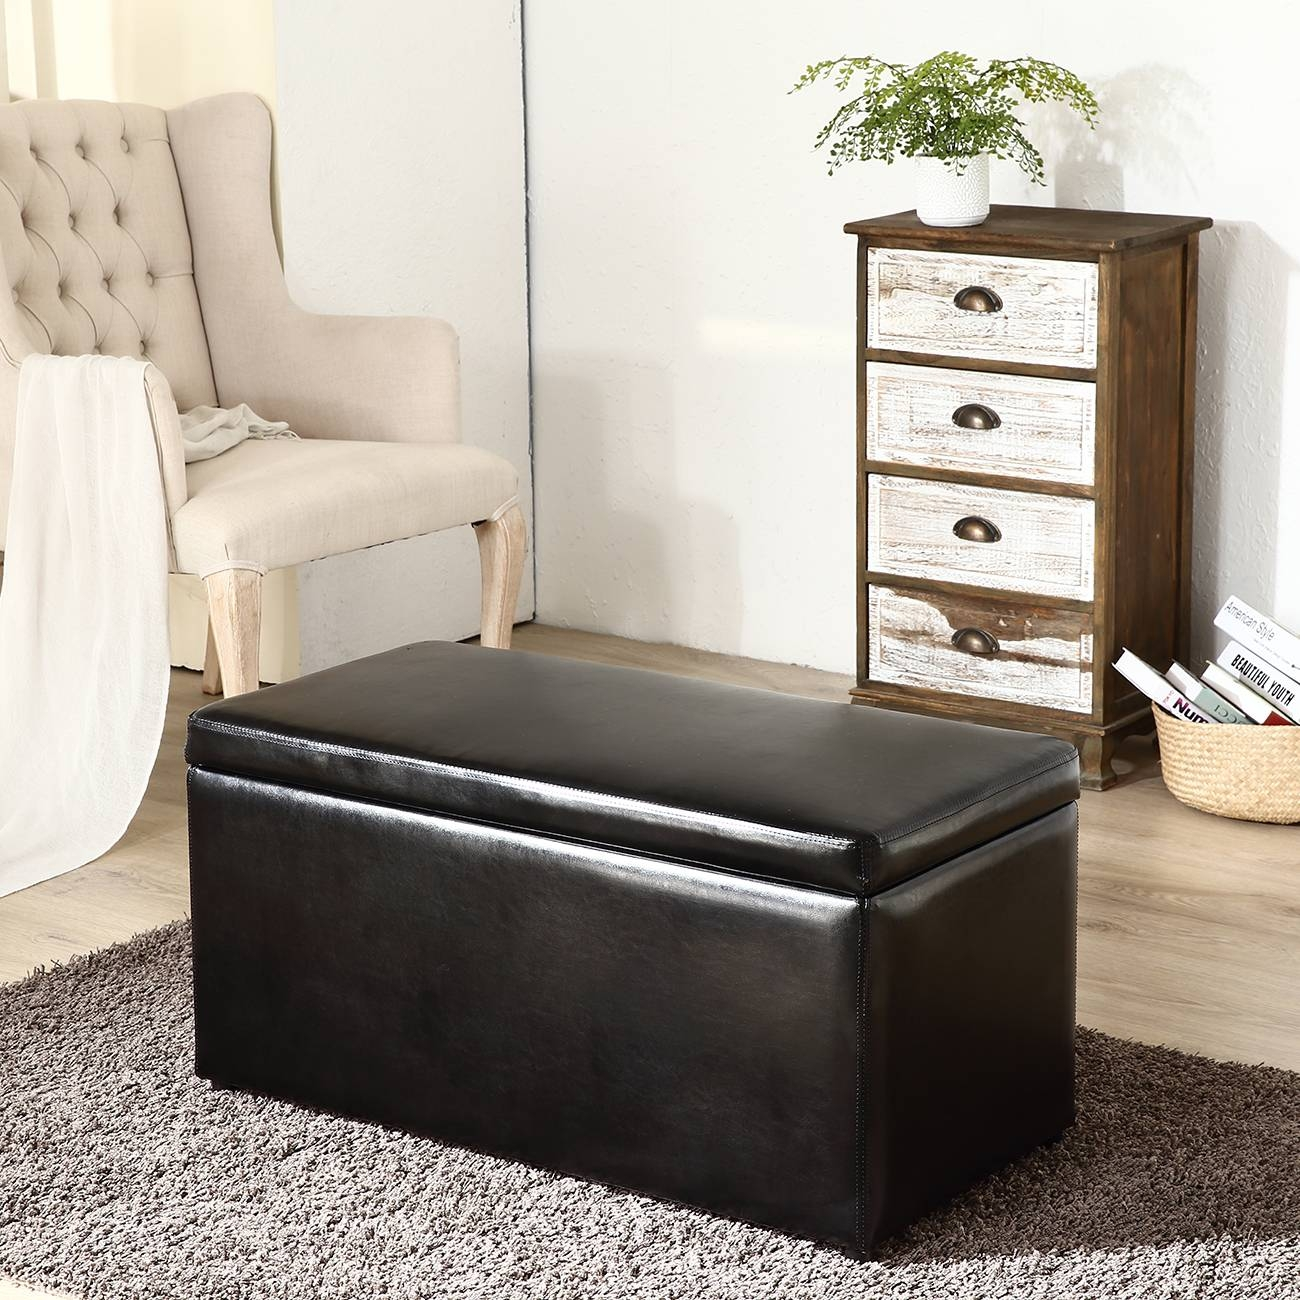 3Pc Ottoman Bench Storage Lid Tray Footrest Coffee Table Black for Coffee Table Footrests (Image 2 of 30)